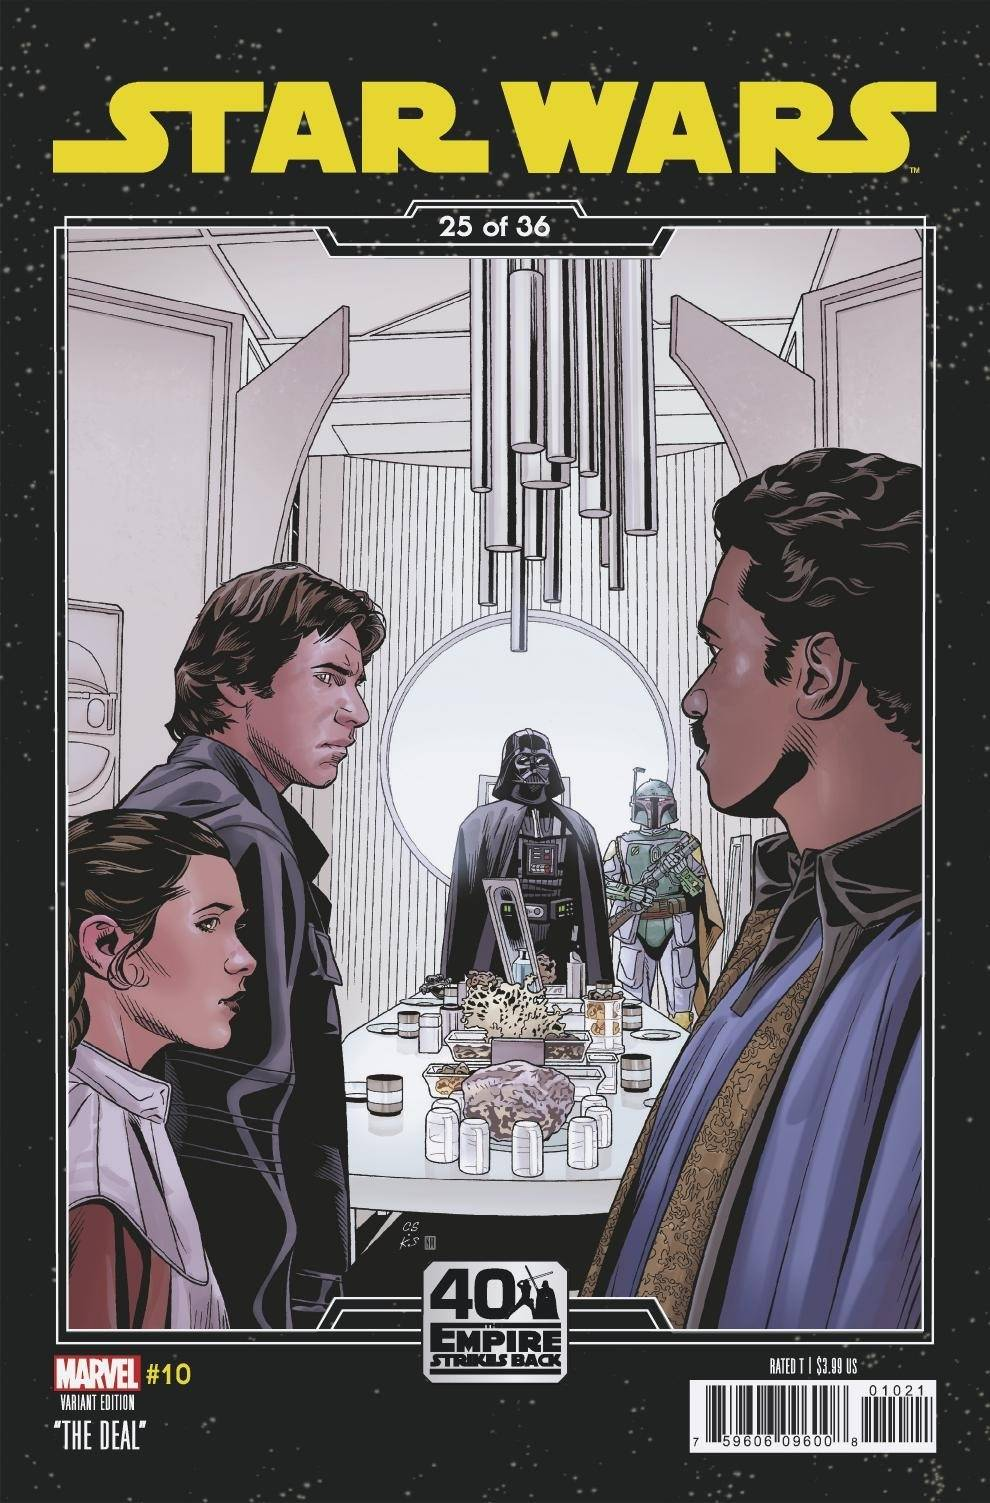 Star Wars #10 (Chris Sprouse The Empire Strikes Back Variant Cover 25 of 36) (06.01.2021)